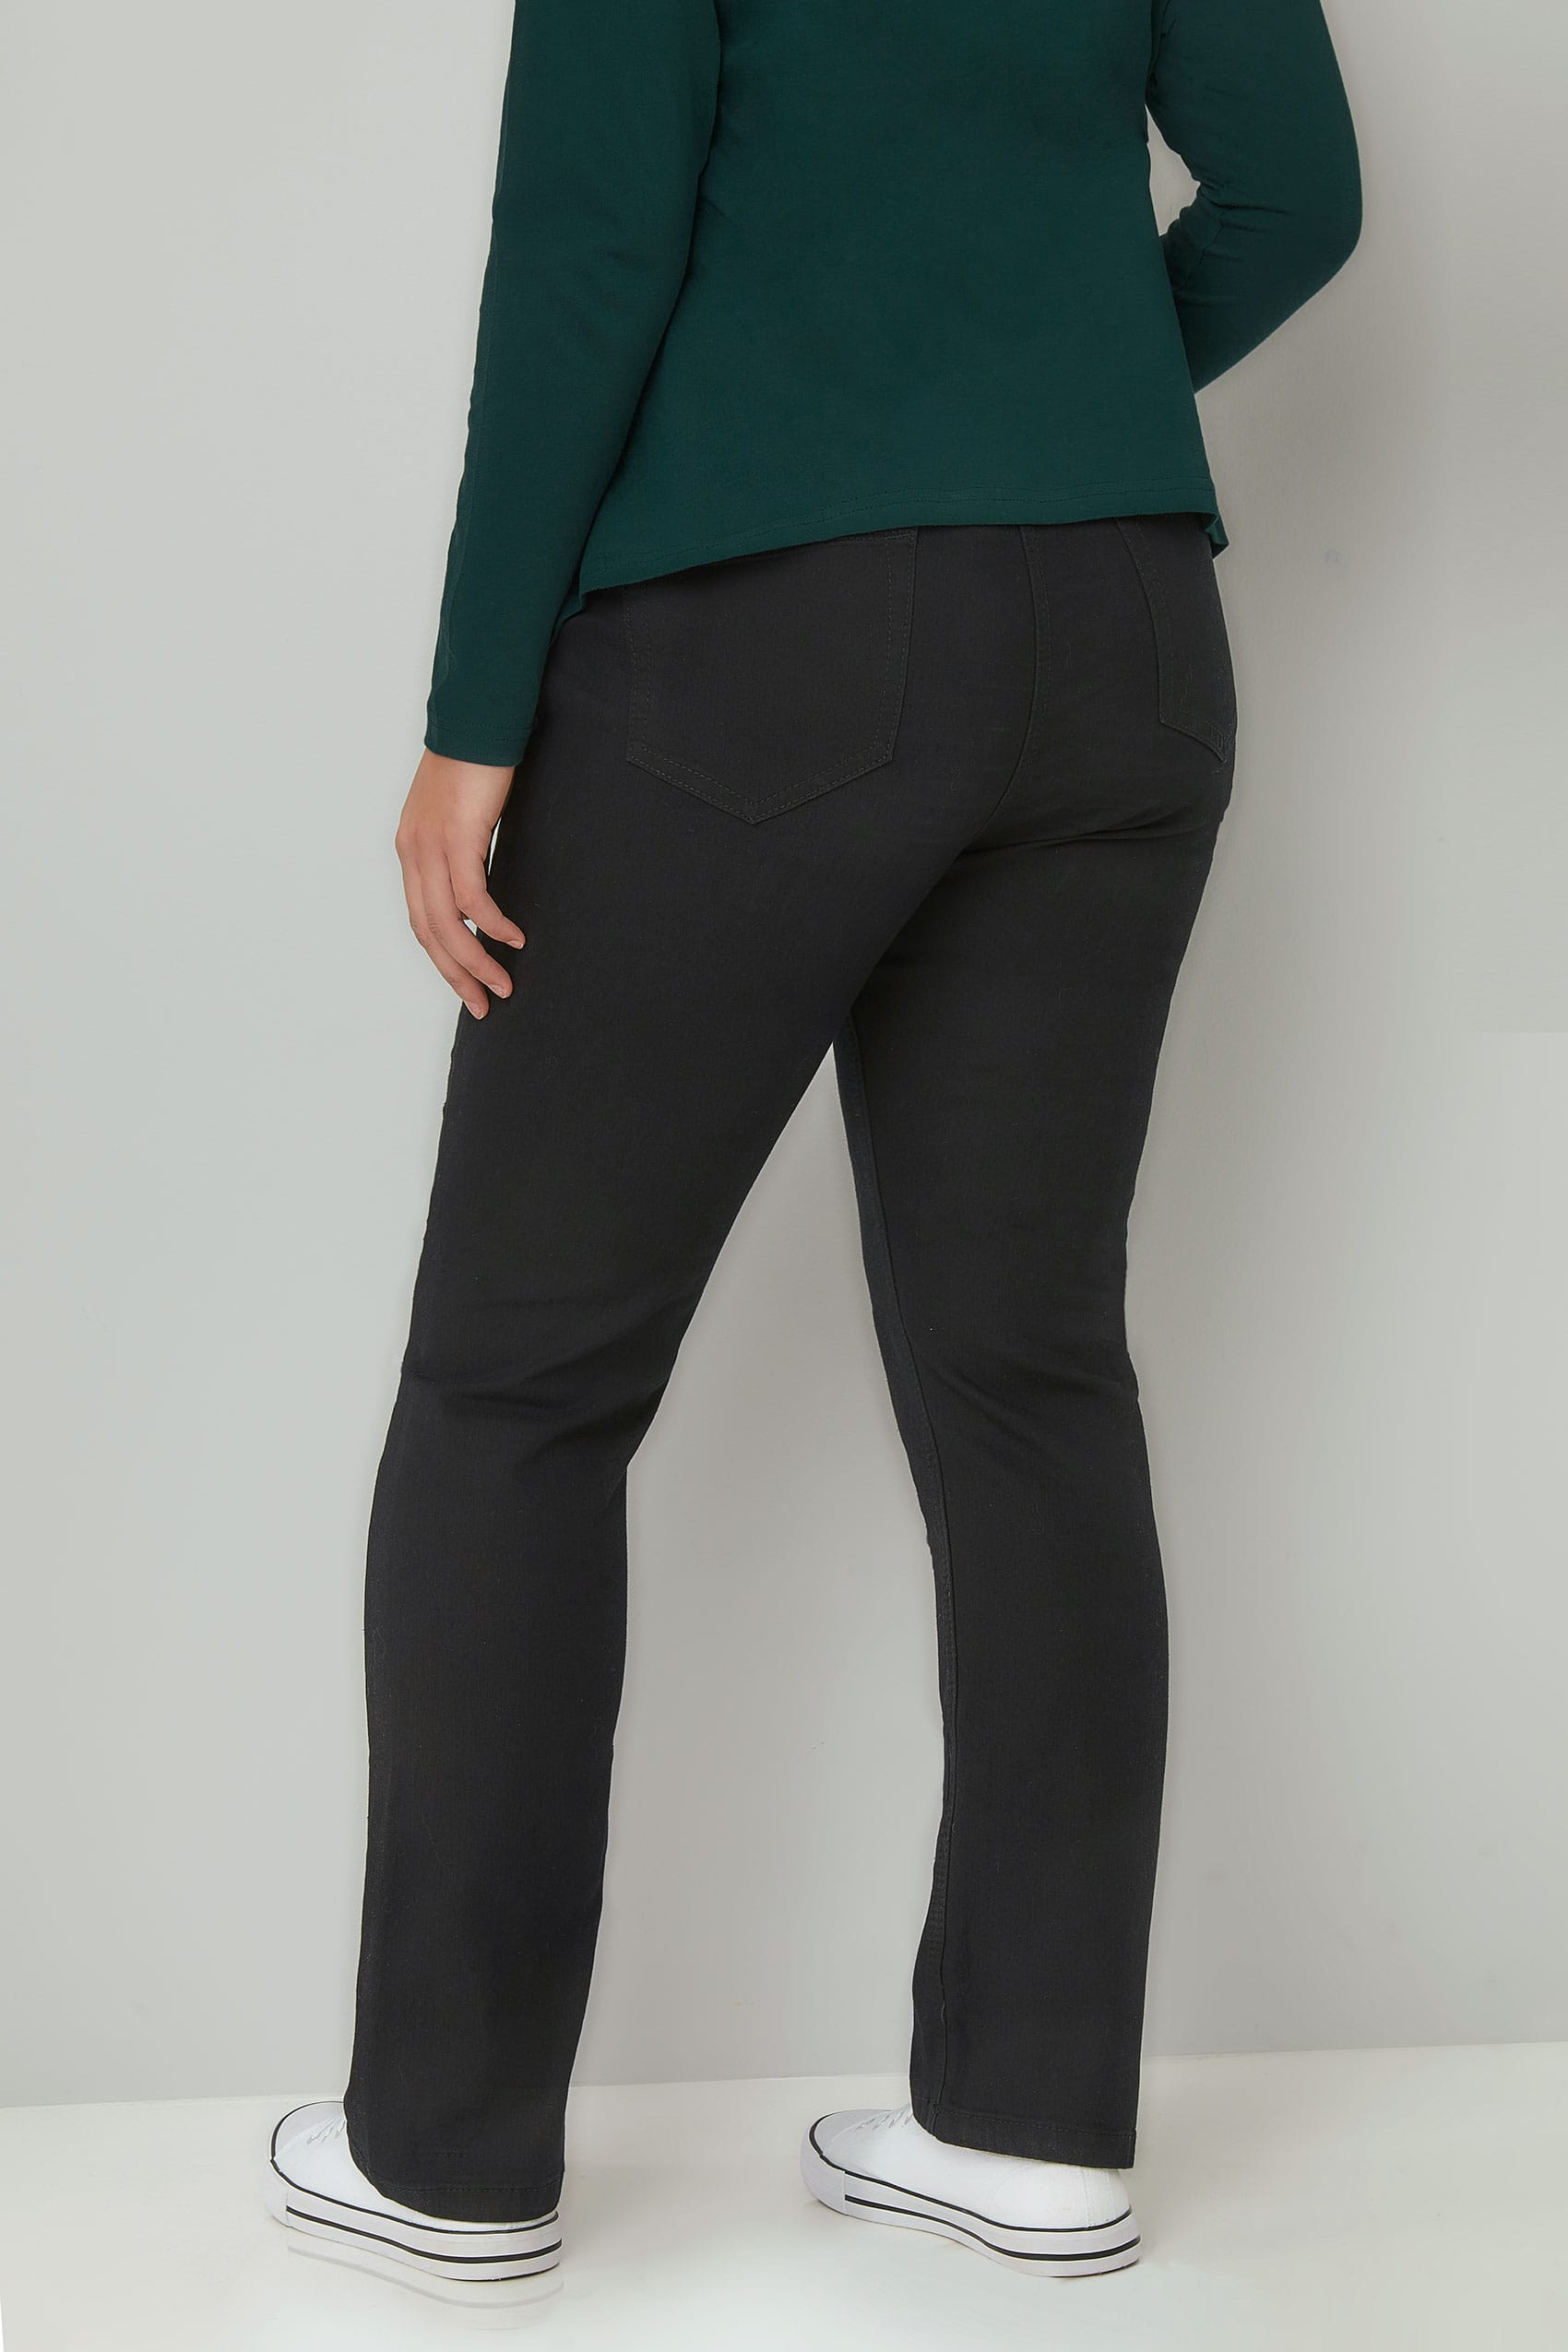 Black Straight Leg Ruby Jeans Plus Size 16 To 36